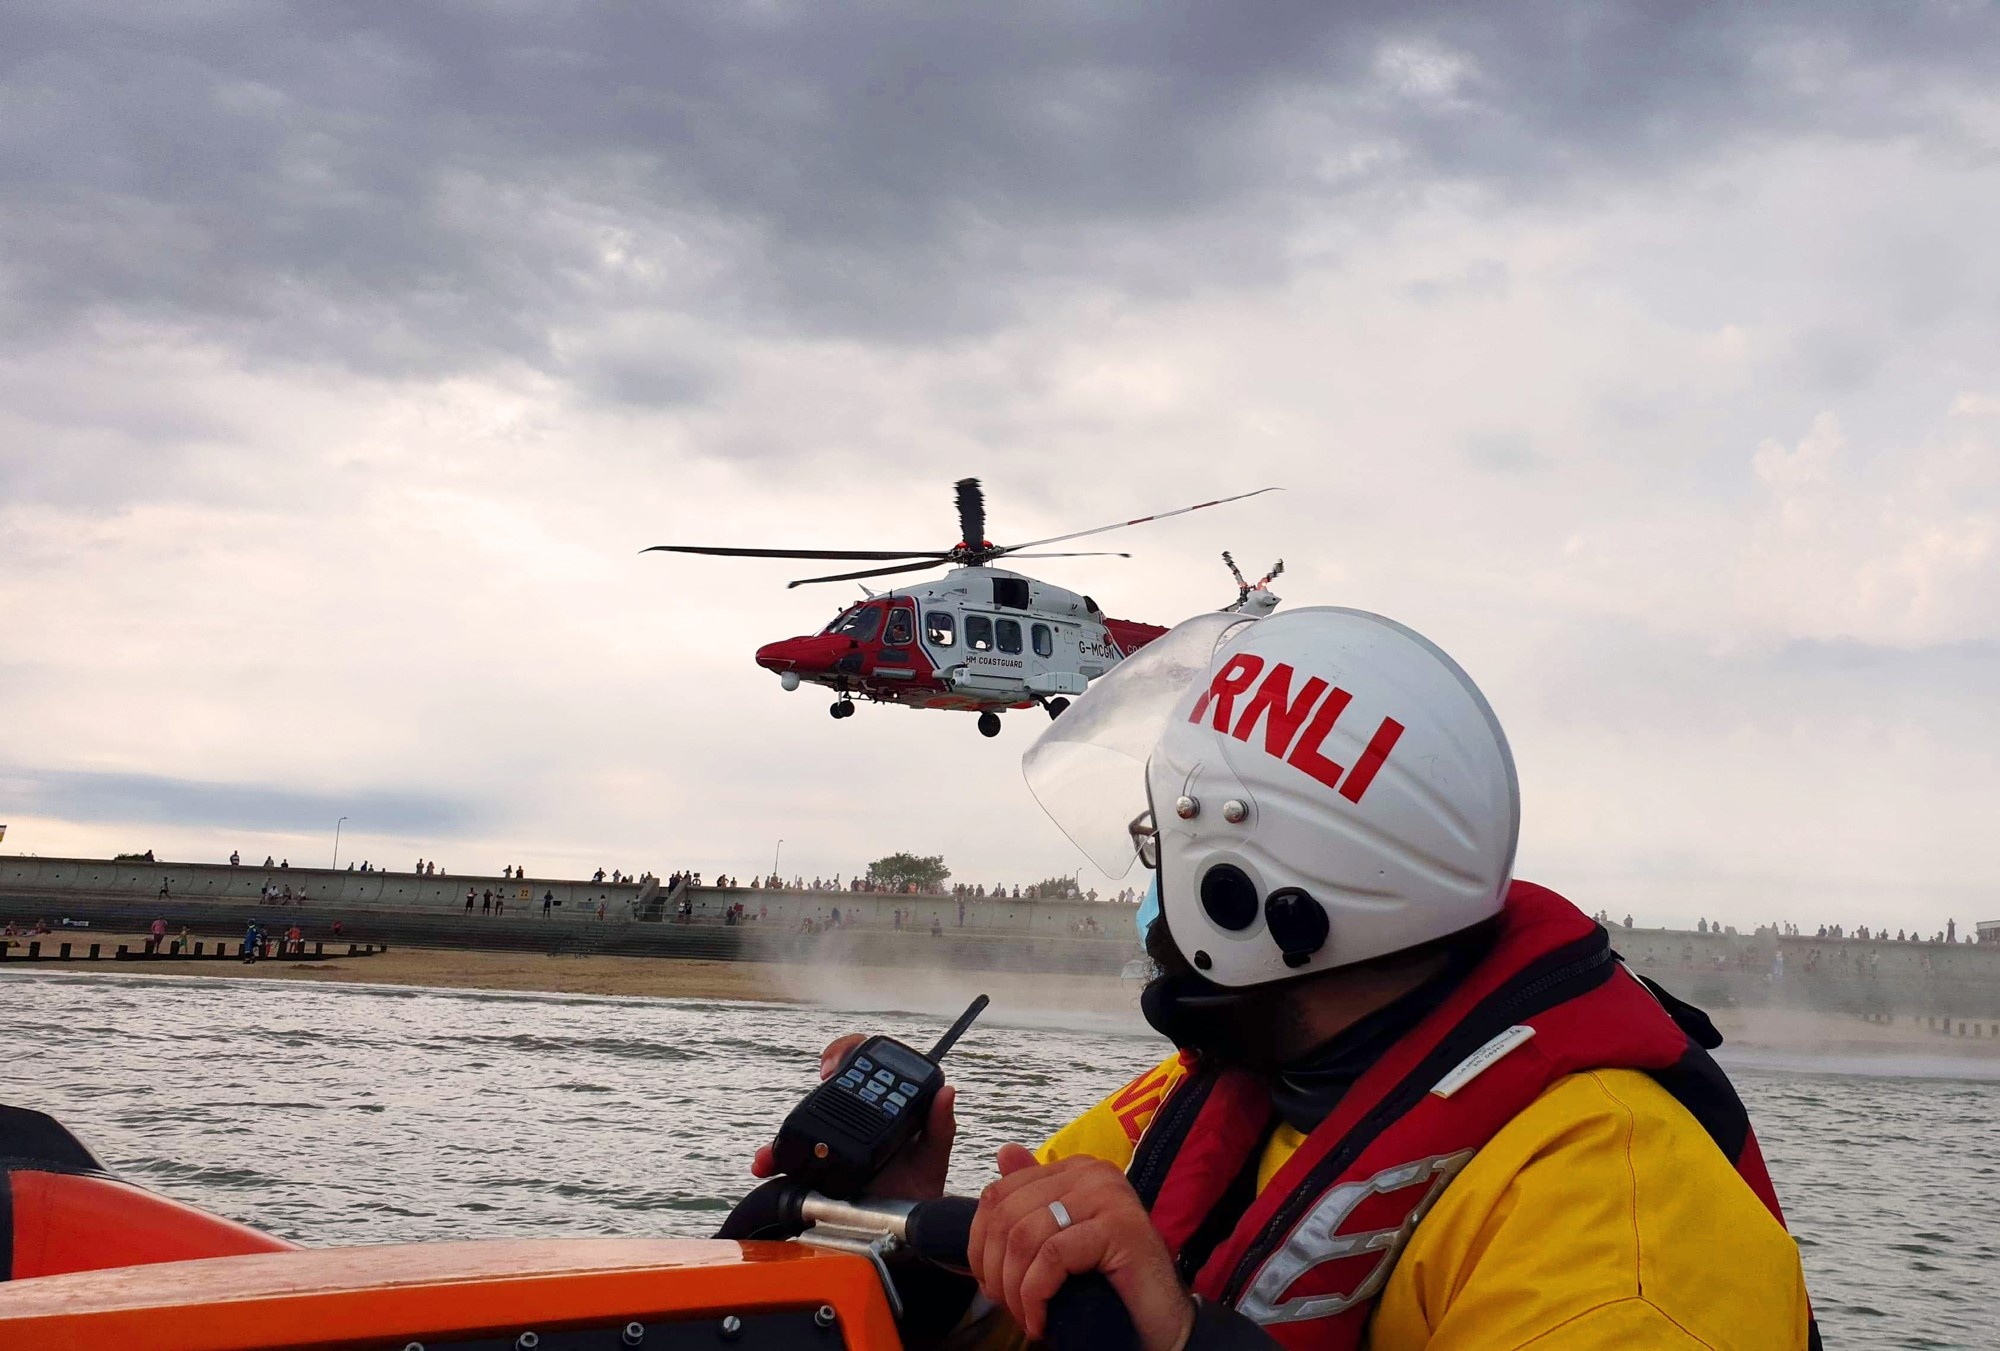 Photo showing crew member on board the RNLI lifeboat and HM Coastguard helicopter taking off from the beach.